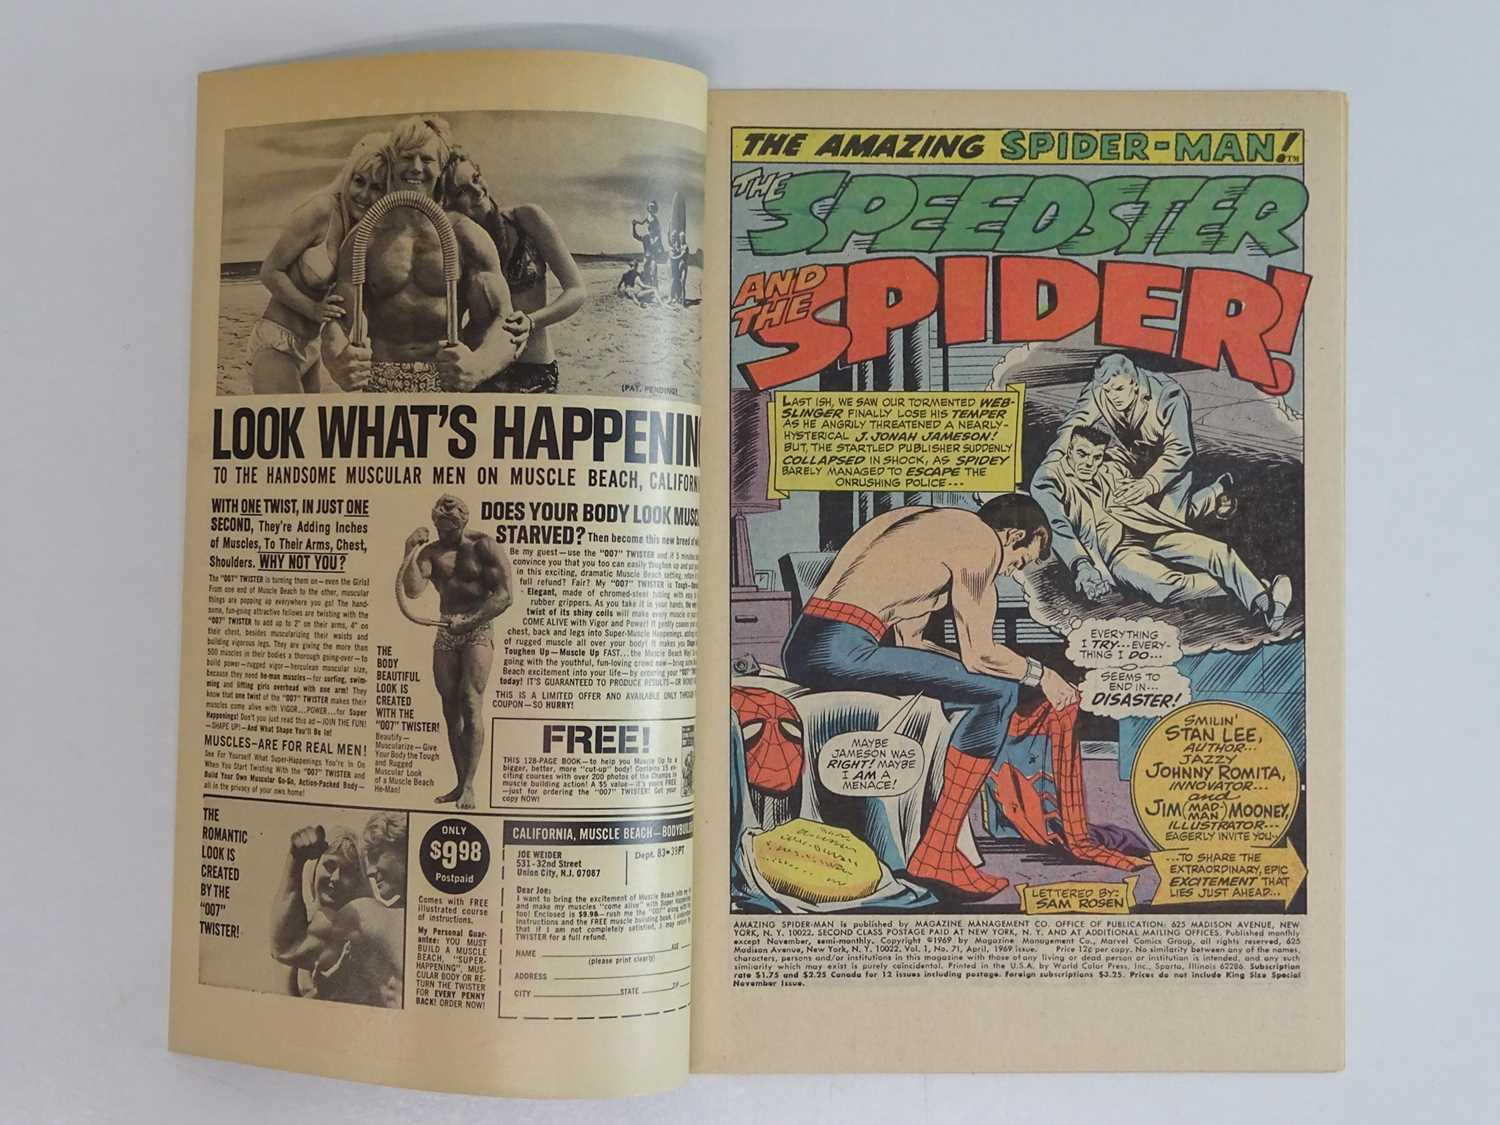 AMAZING SPIDER-MAN #71 - (1969 - MARVEL) - Quicksilver, Scarlet Witch, Toad appearances - John - Image 3 of 9